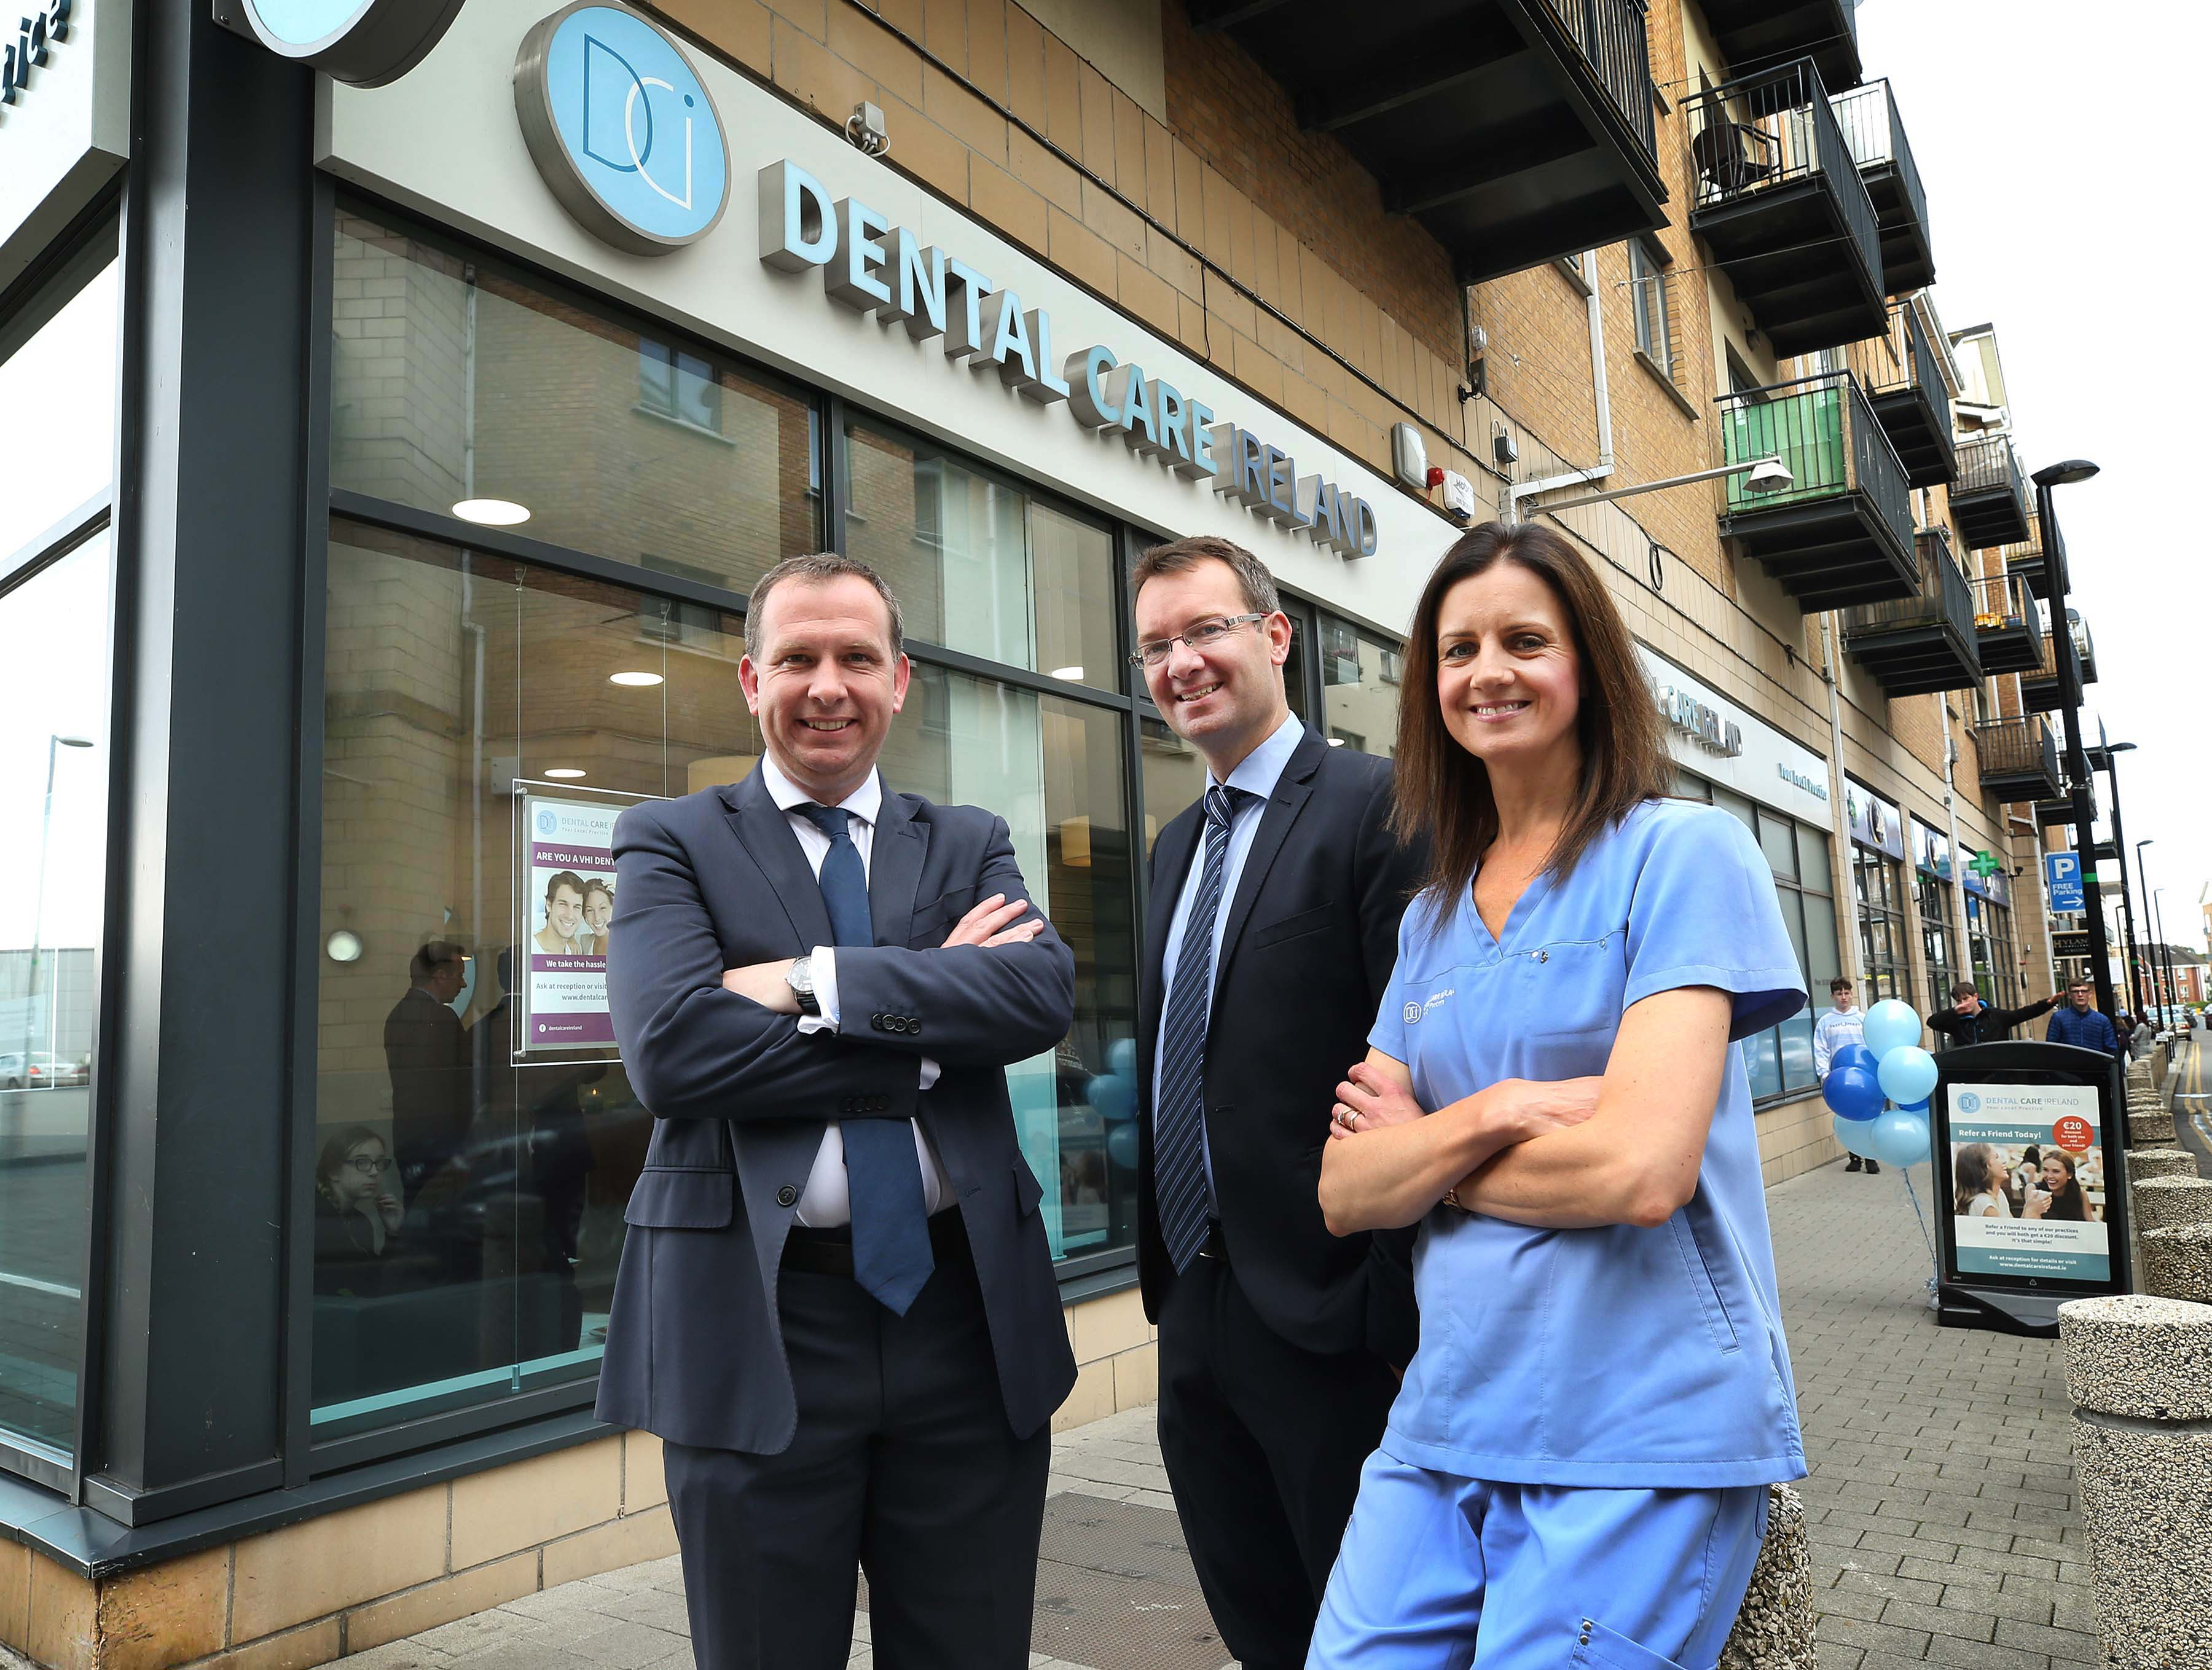 The Dental Care Ireland practice in Ashbourne, Co Meath